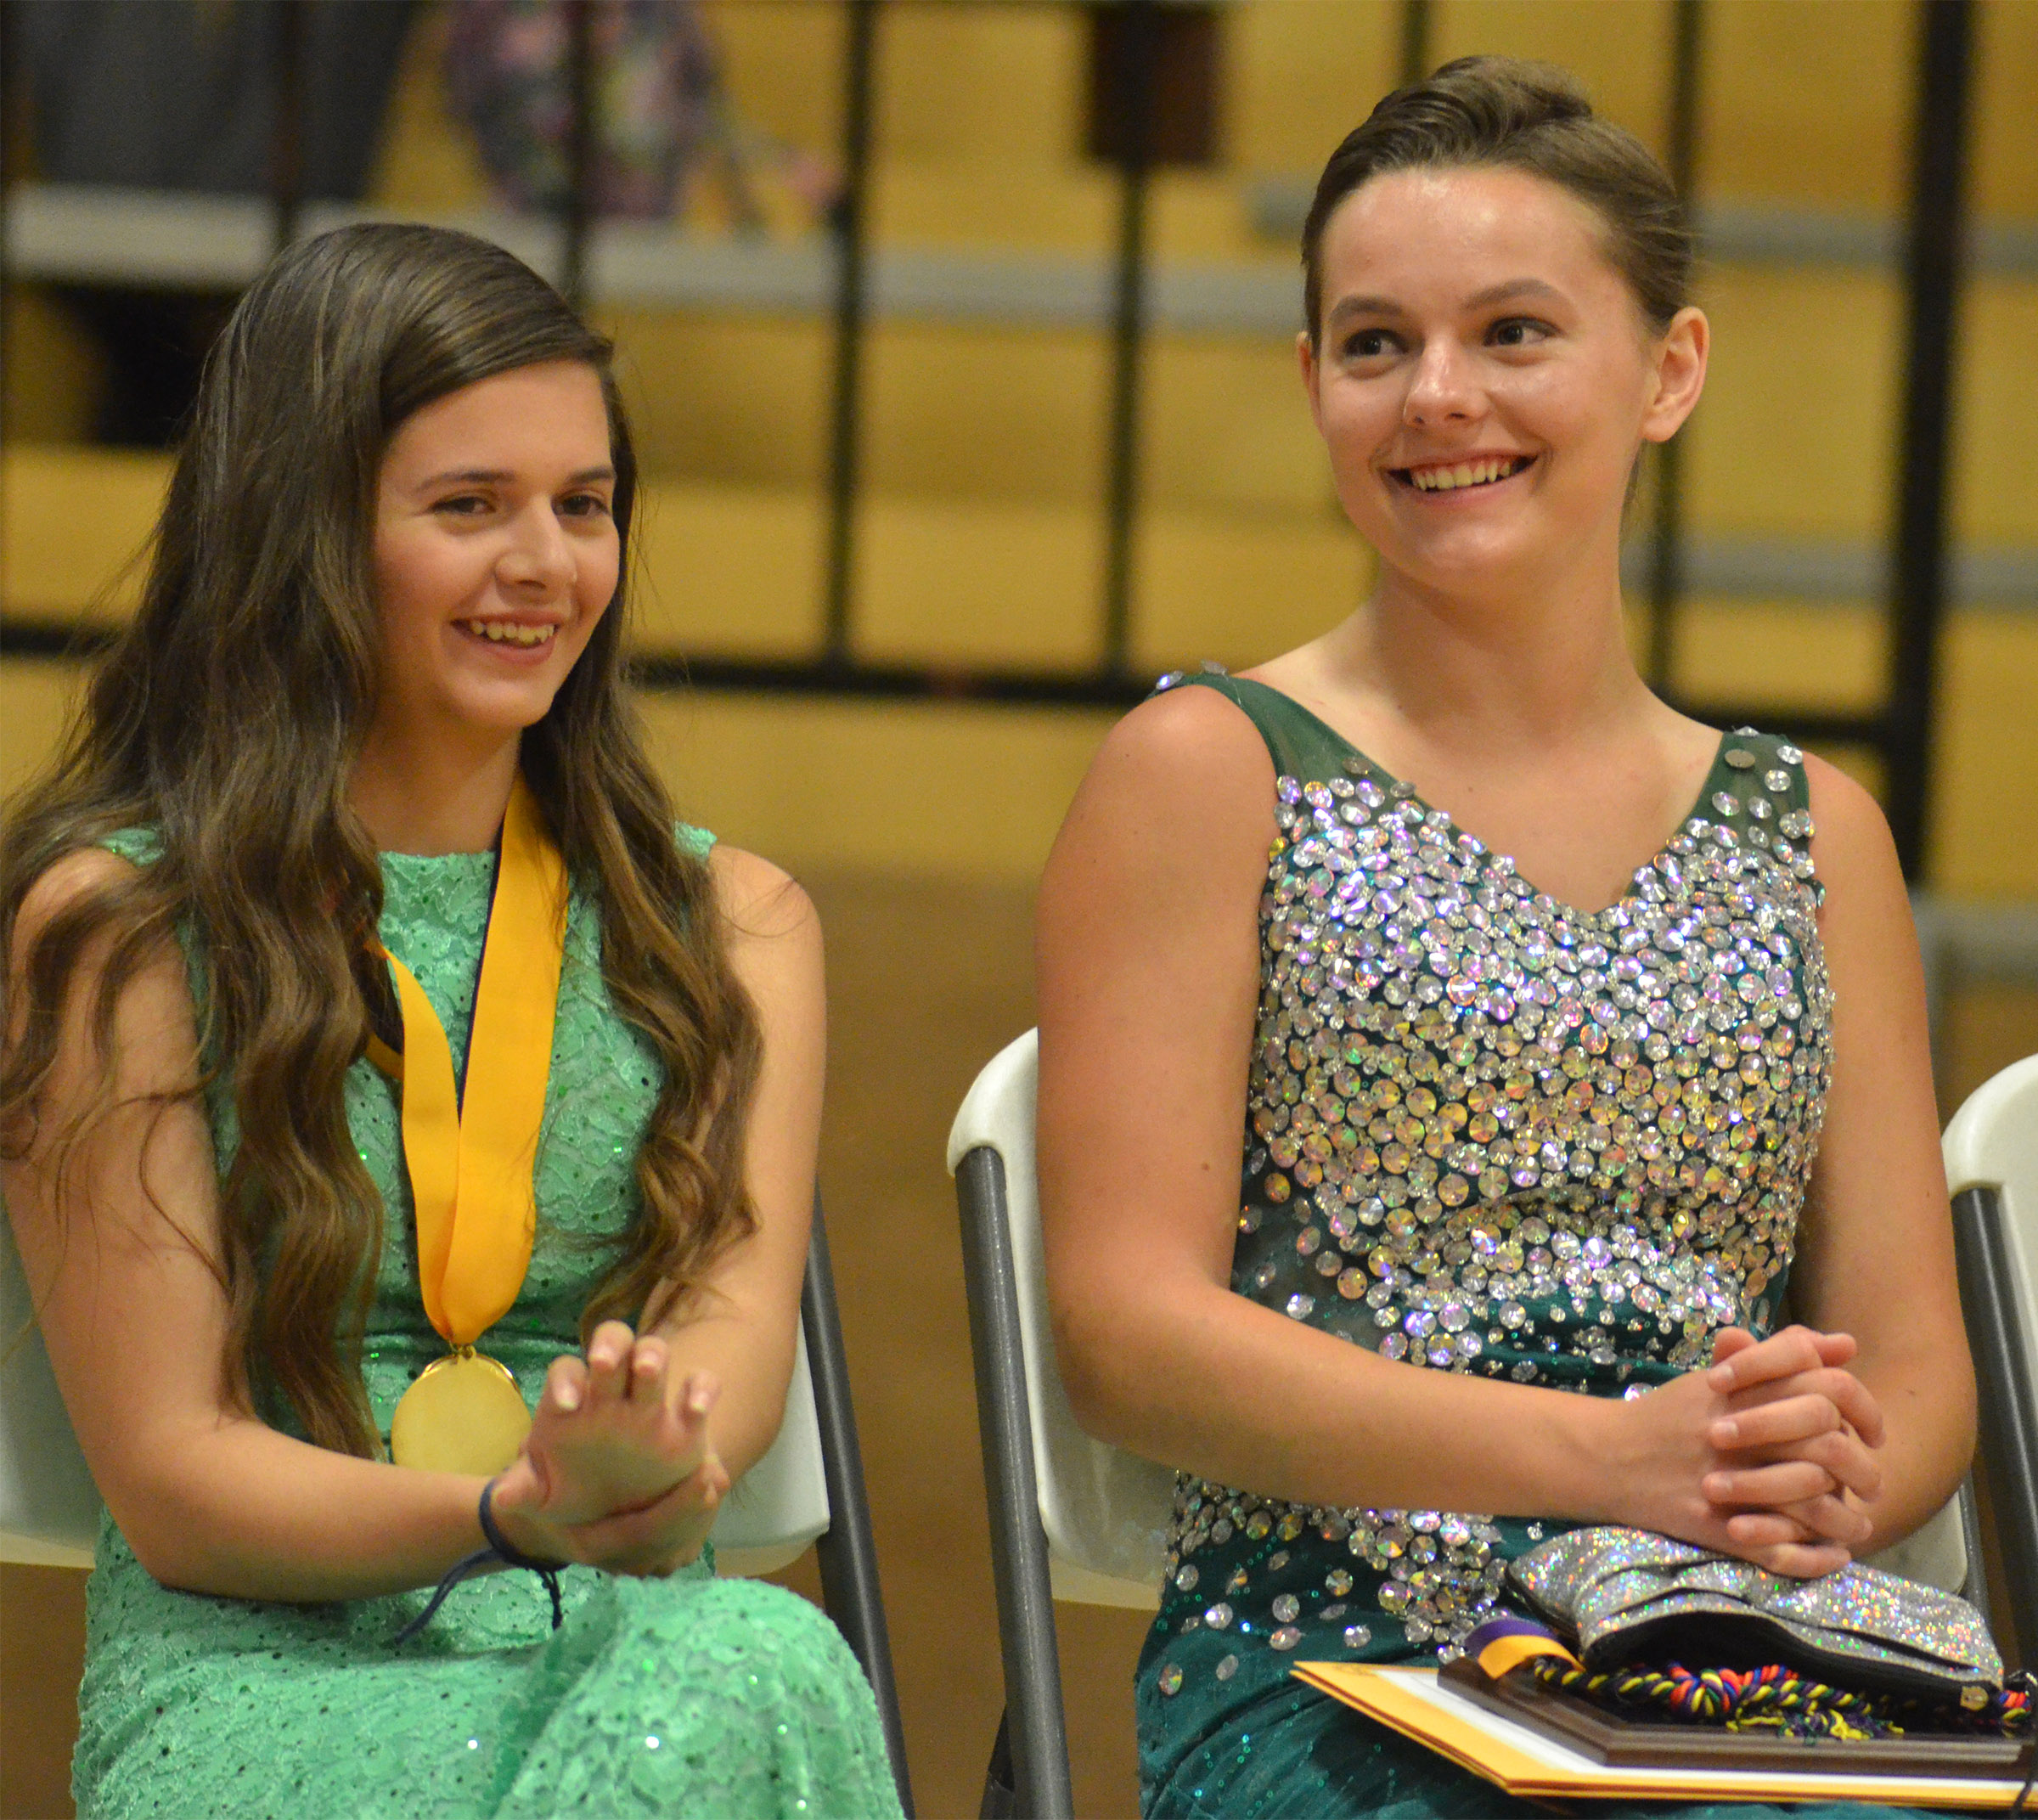 Shauna Jones, at left, and Kyrsten Hill laugh as they listen to the class history.